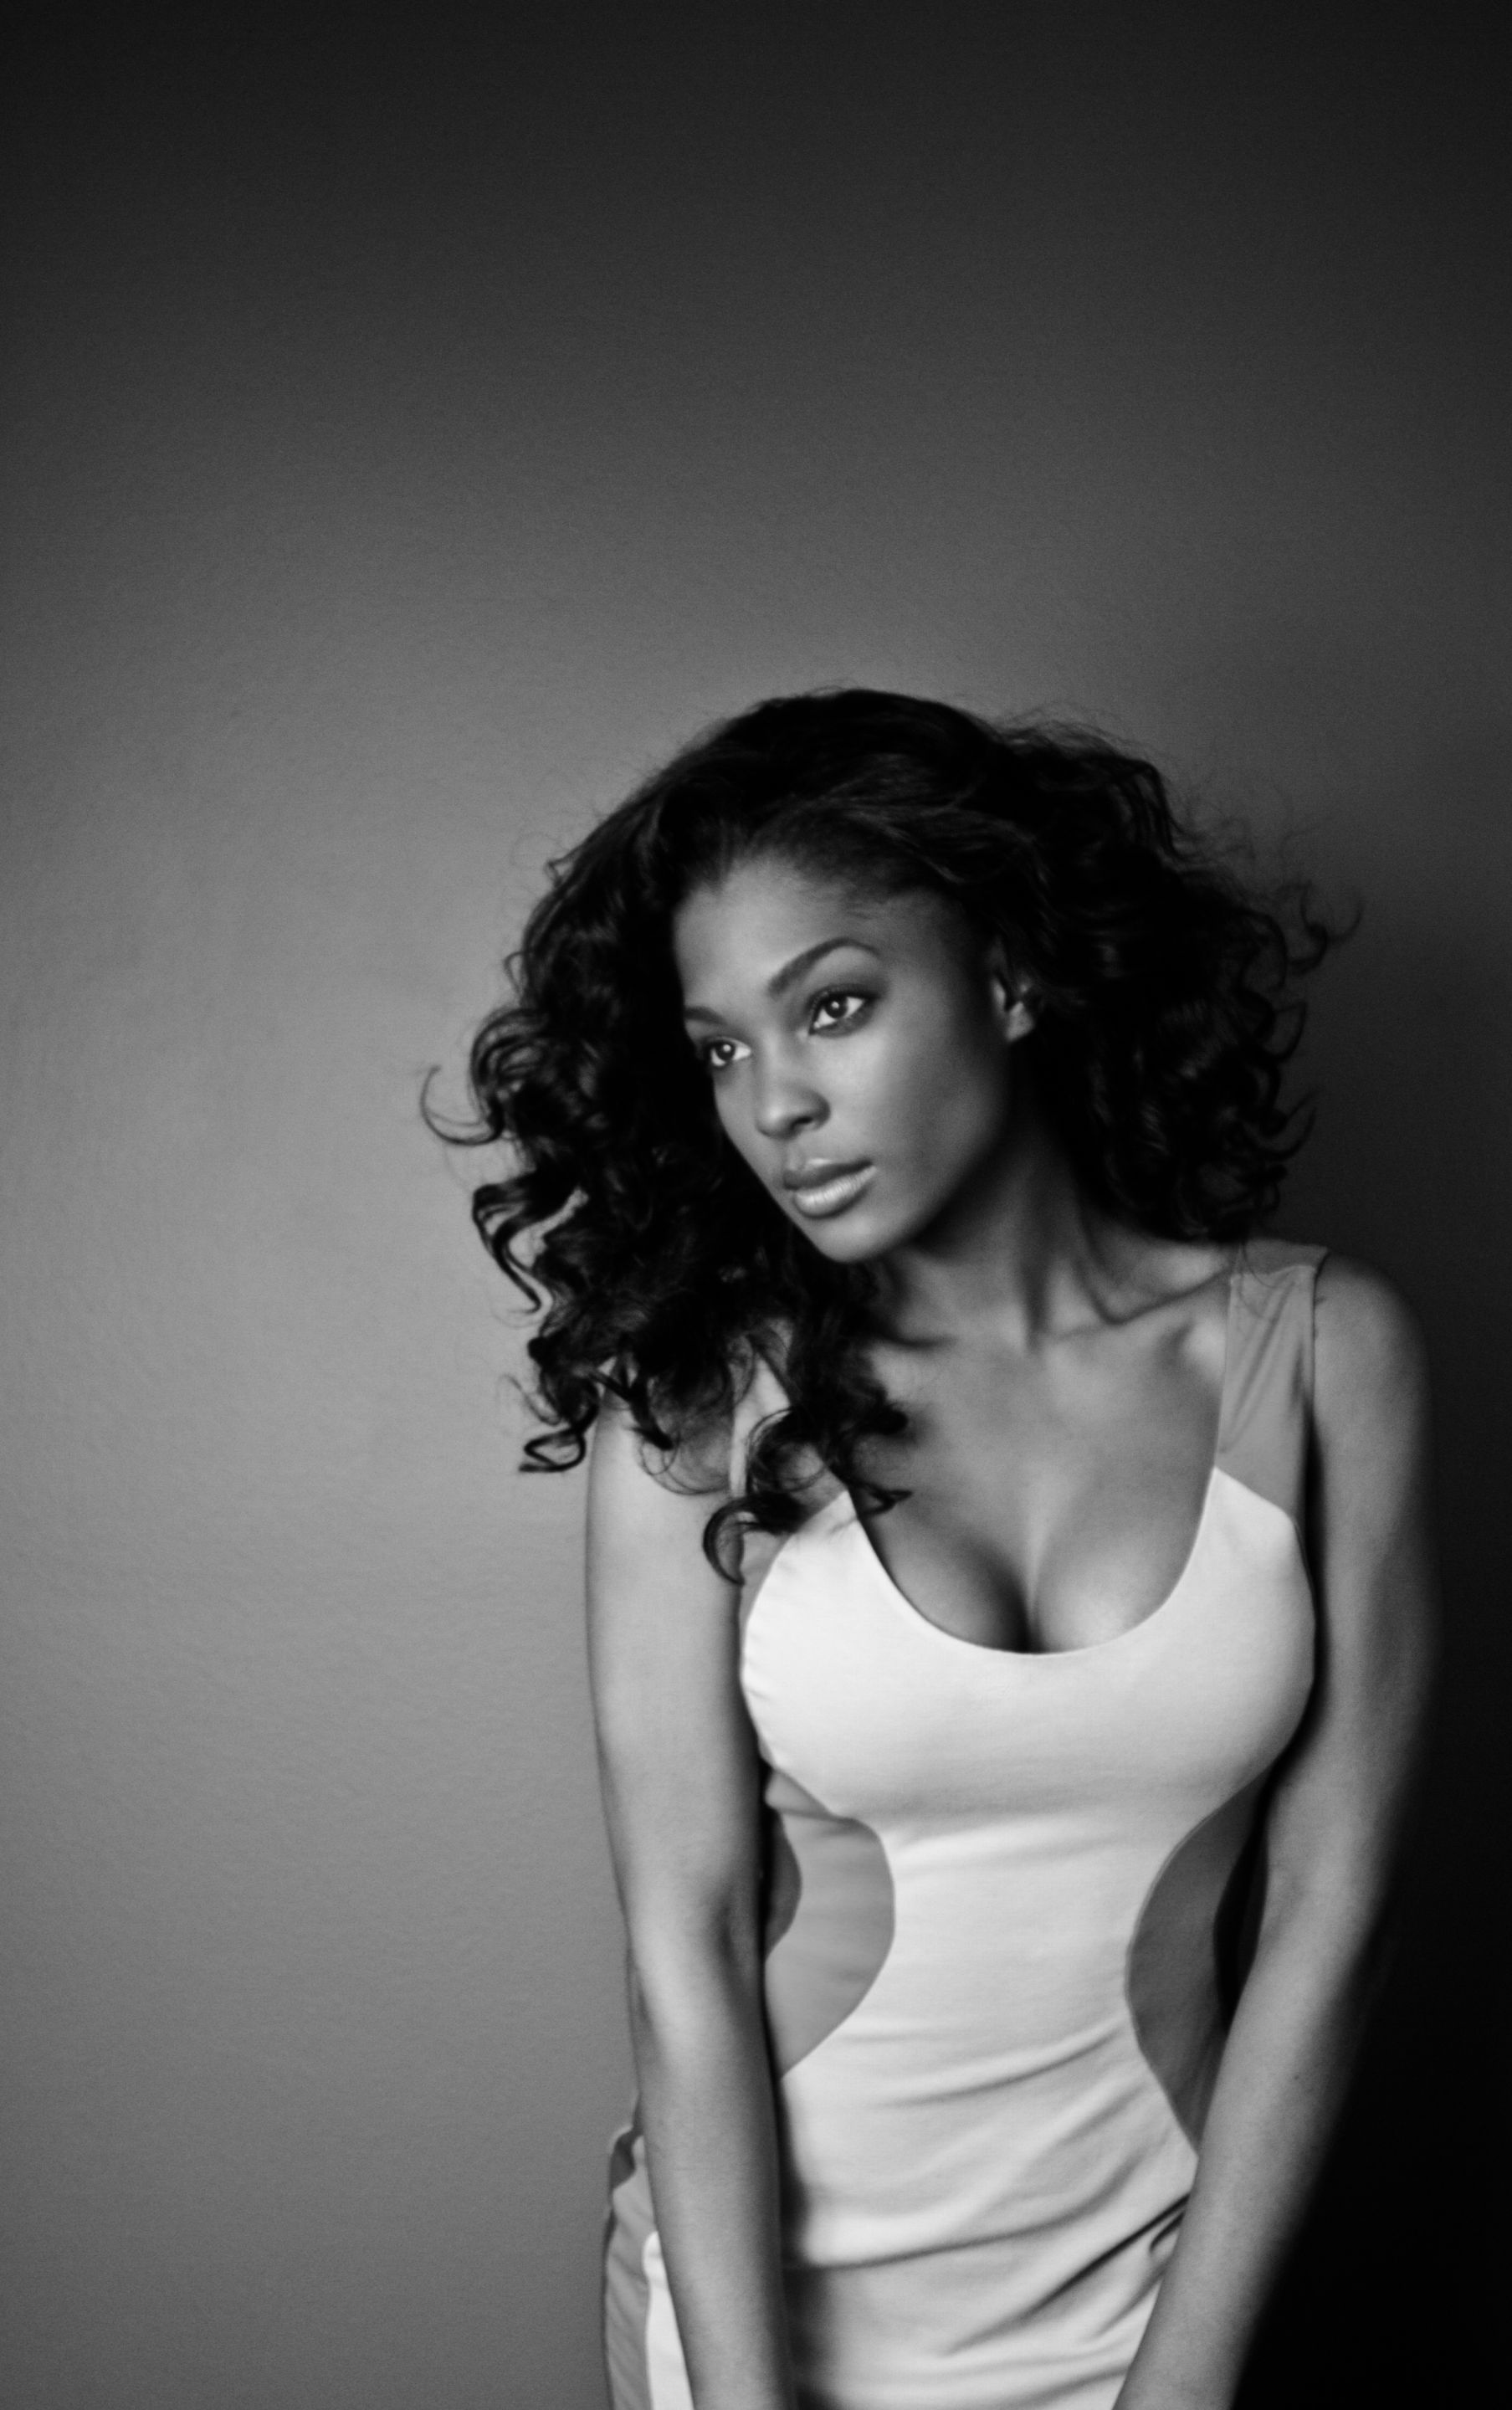 1lanisha_cole__fine_art_photographer__black_and_white__self_portrait__photo__april_2013.jpg